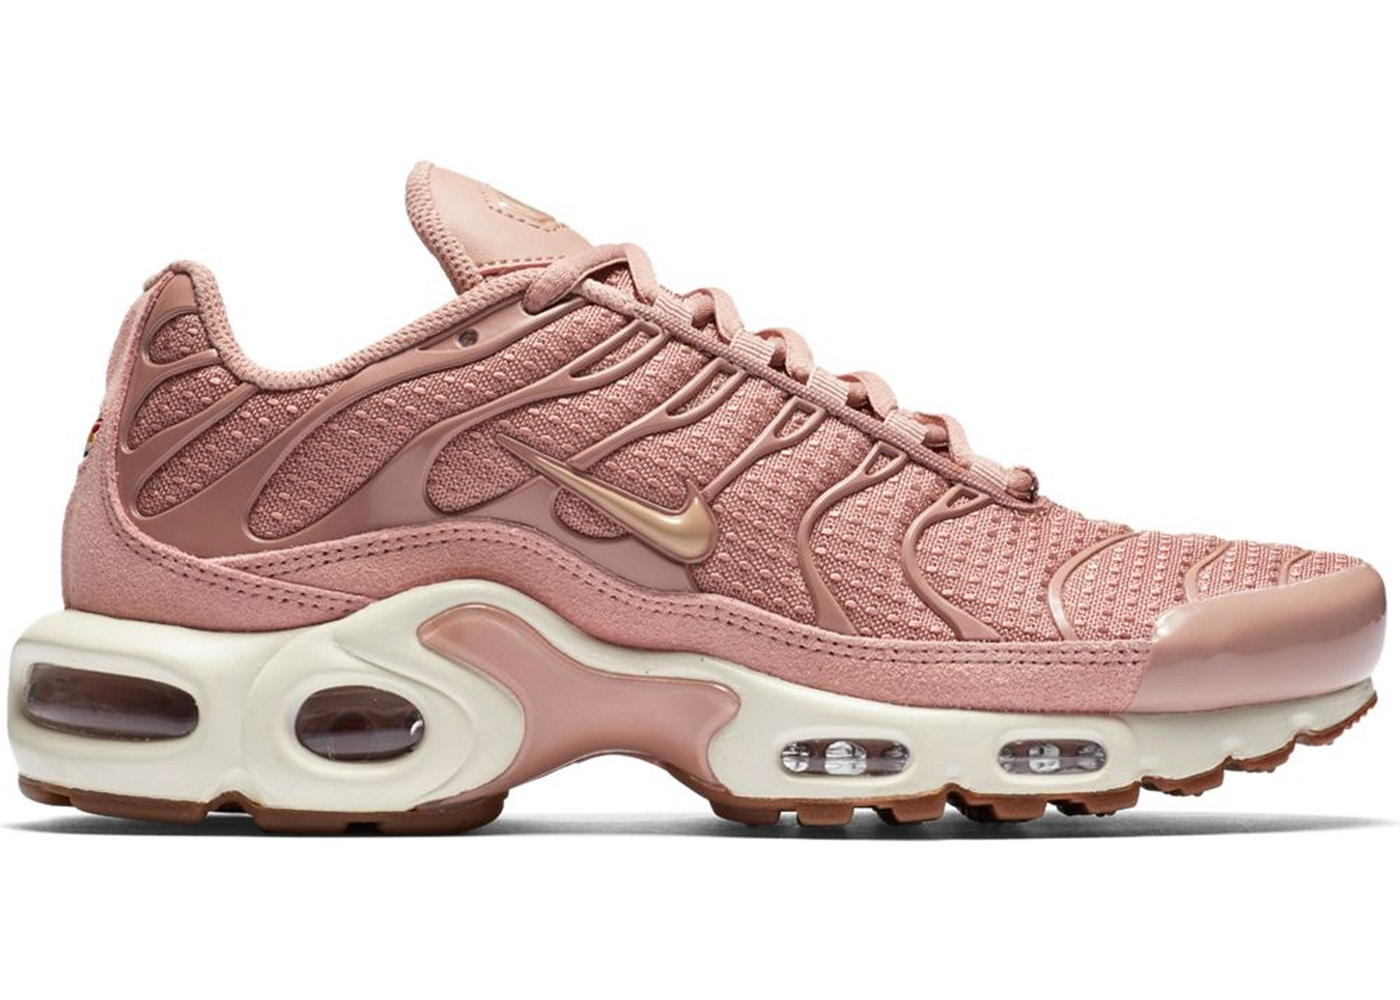 new product 4be02 e6d02 Air Max Plus Particle Pink (W) - 605112-603